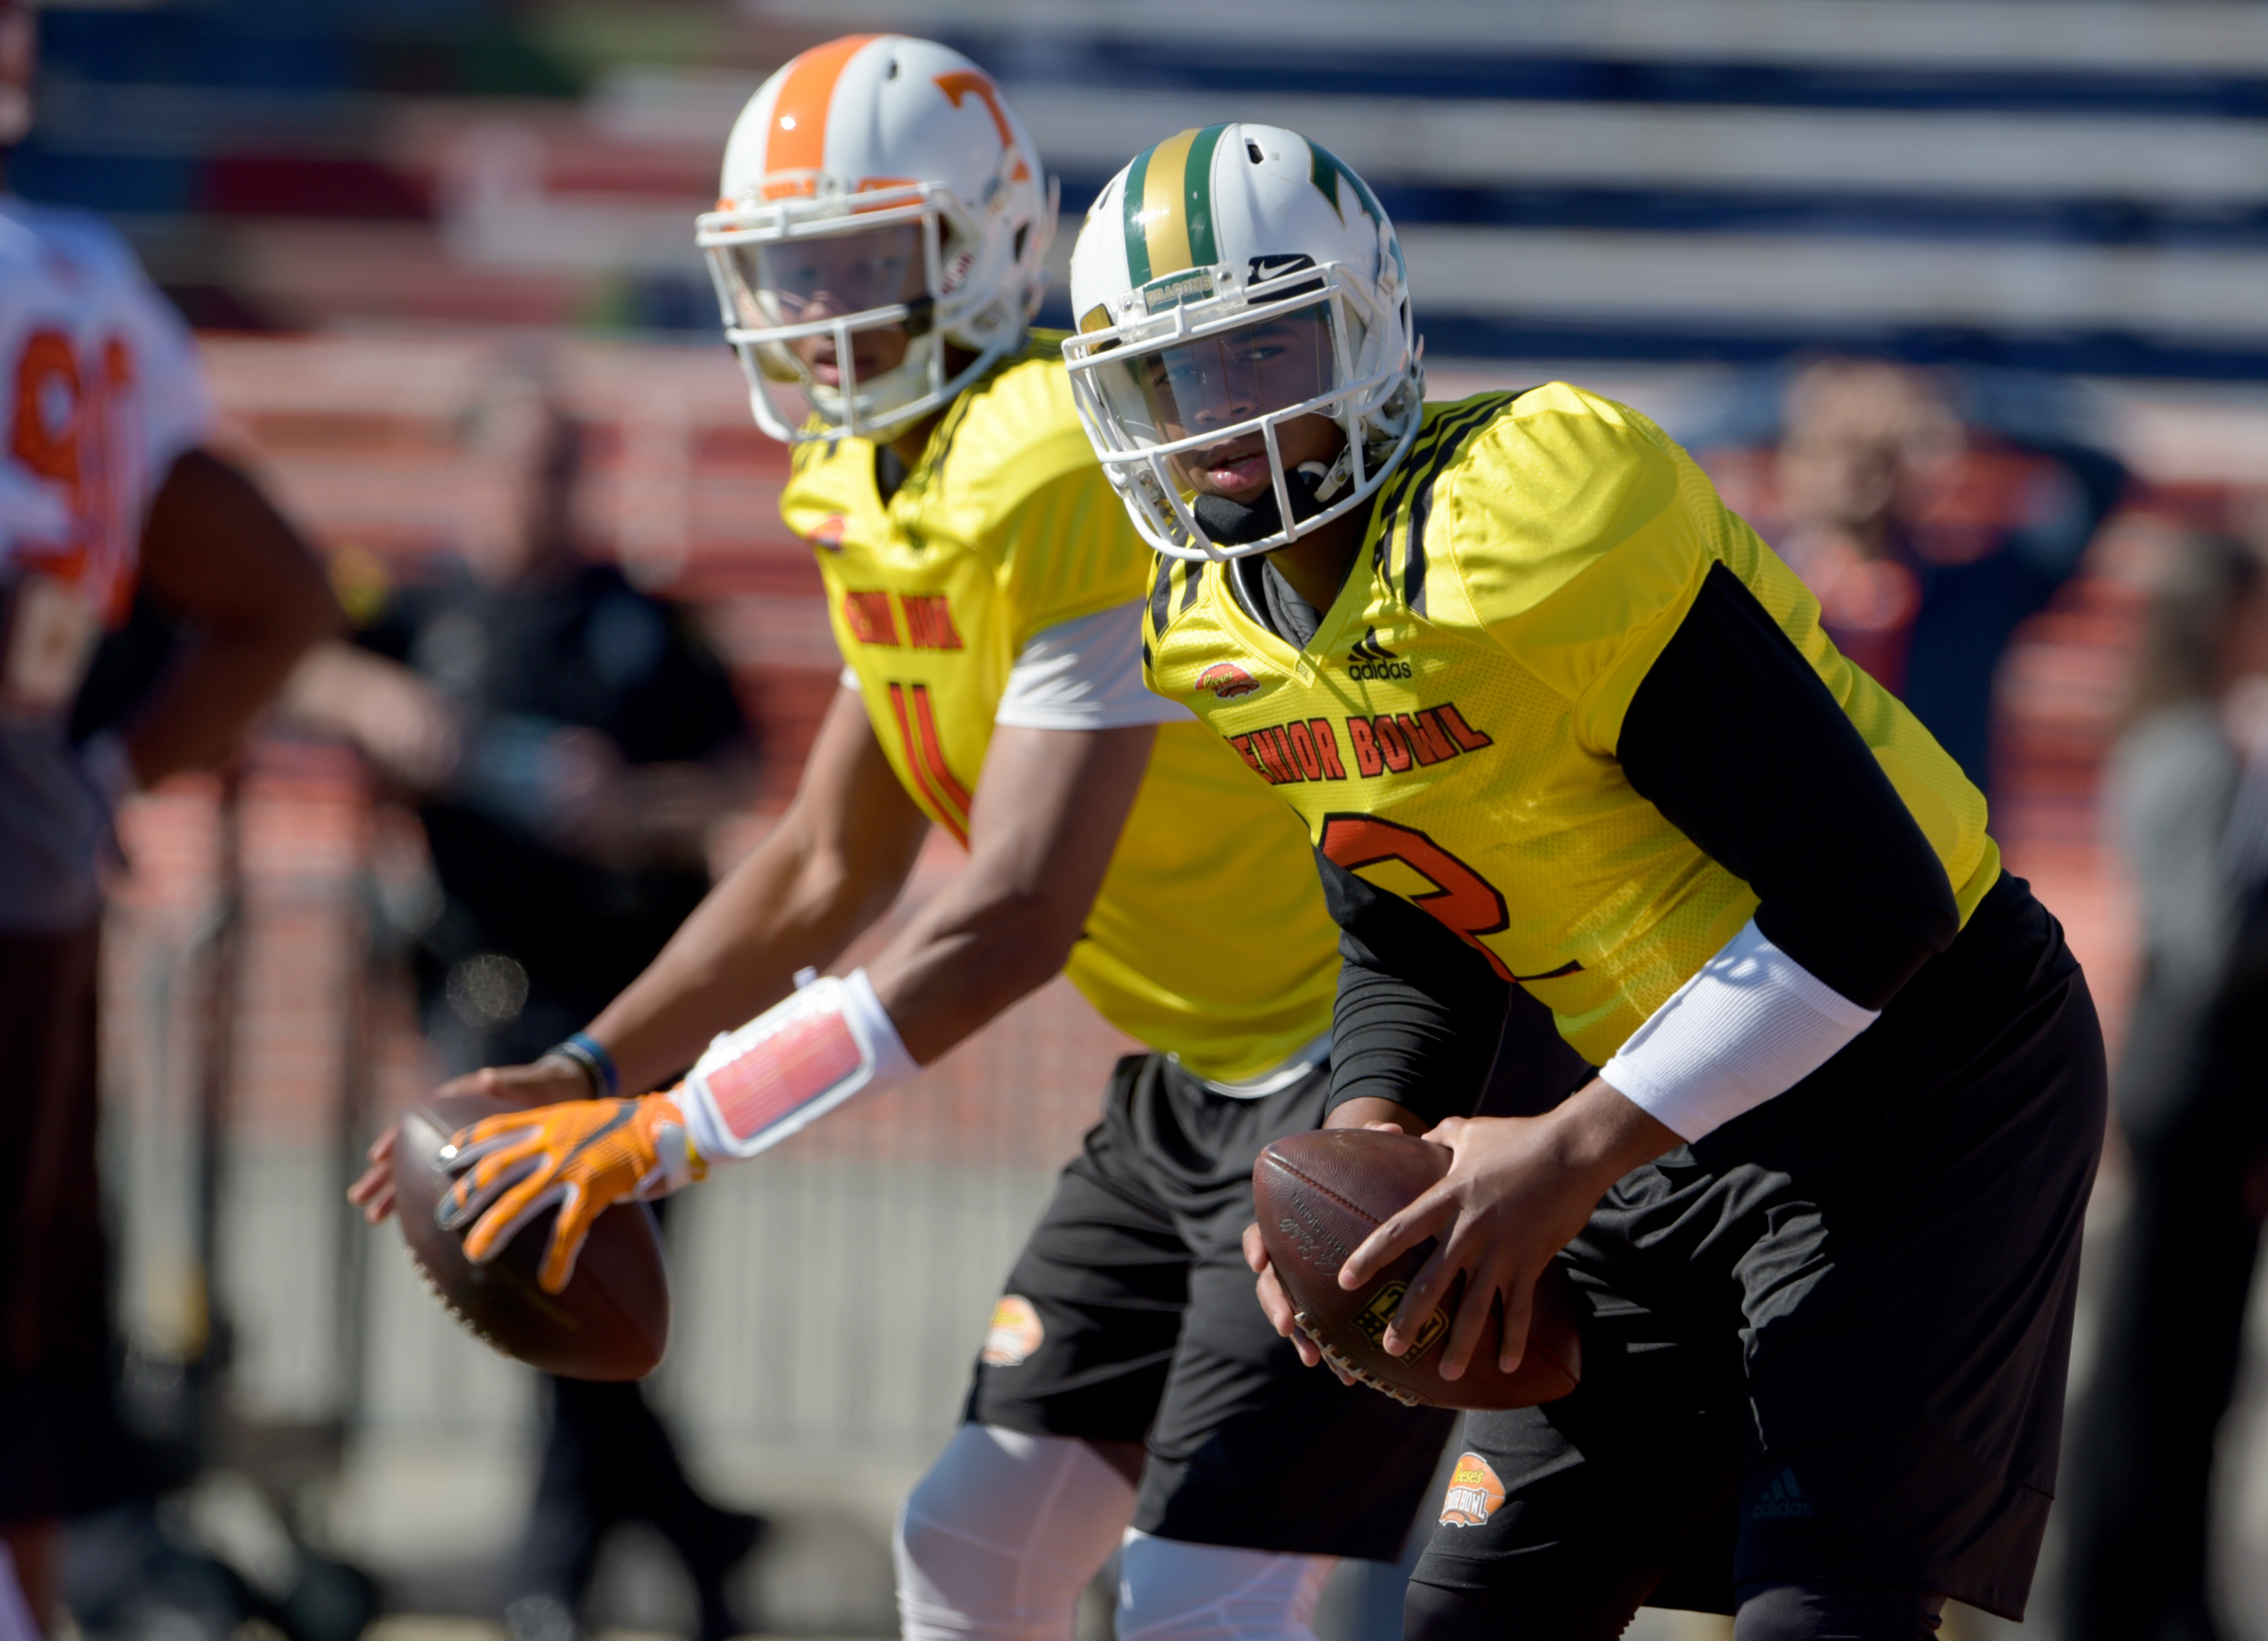 Senior Bowl Recap: South Holds On Against North